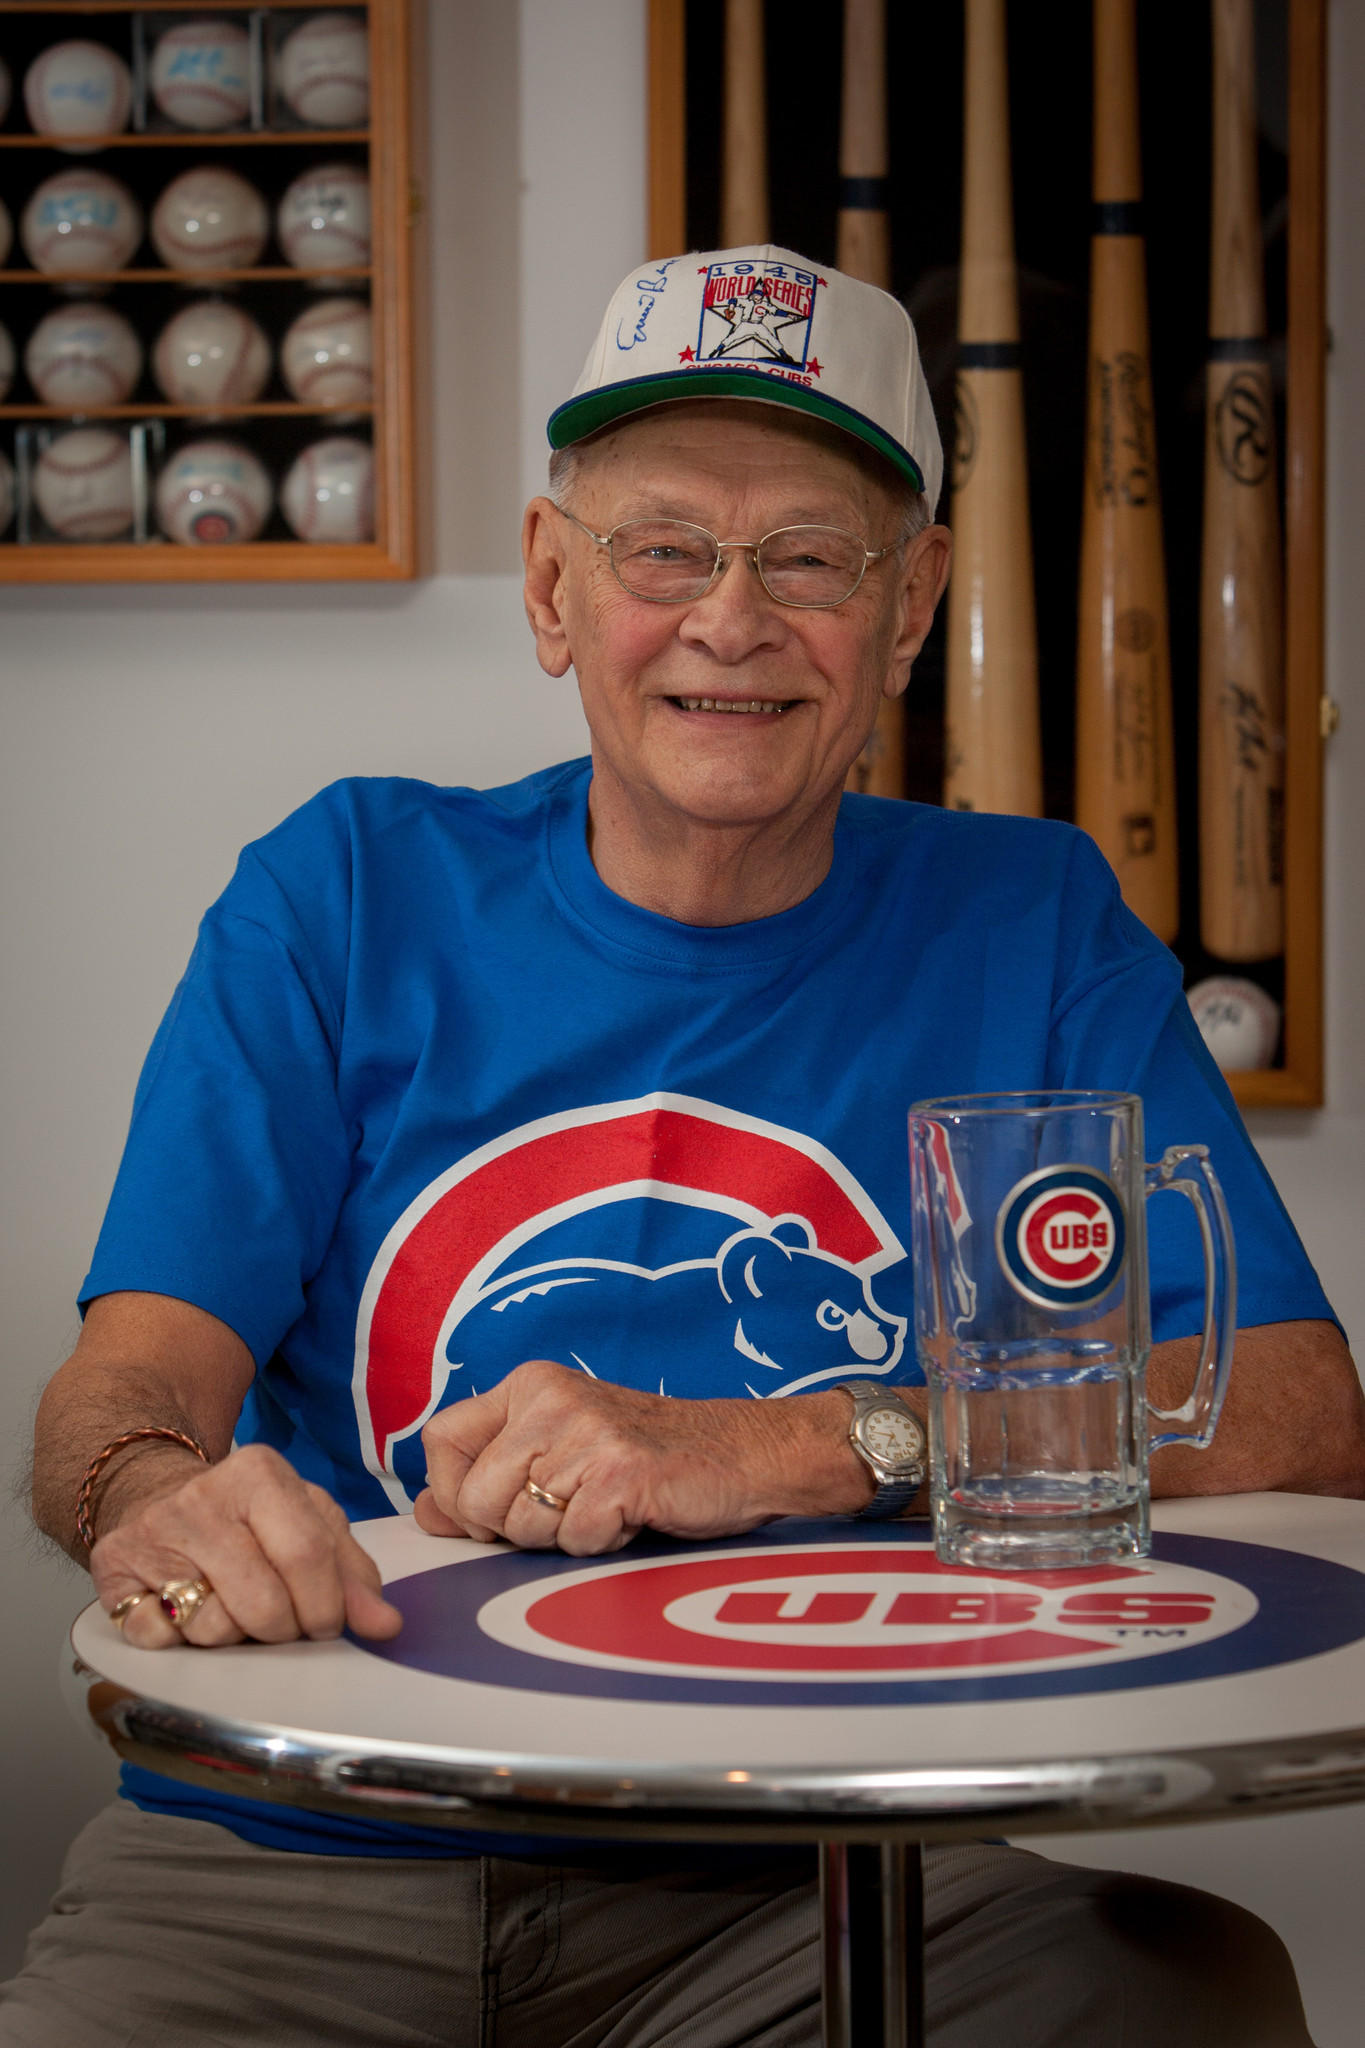 Ray Picl, an 86-year-old man in Peoria Heights, who is the head of Chicago Cubs Boosters of Central Illinois.